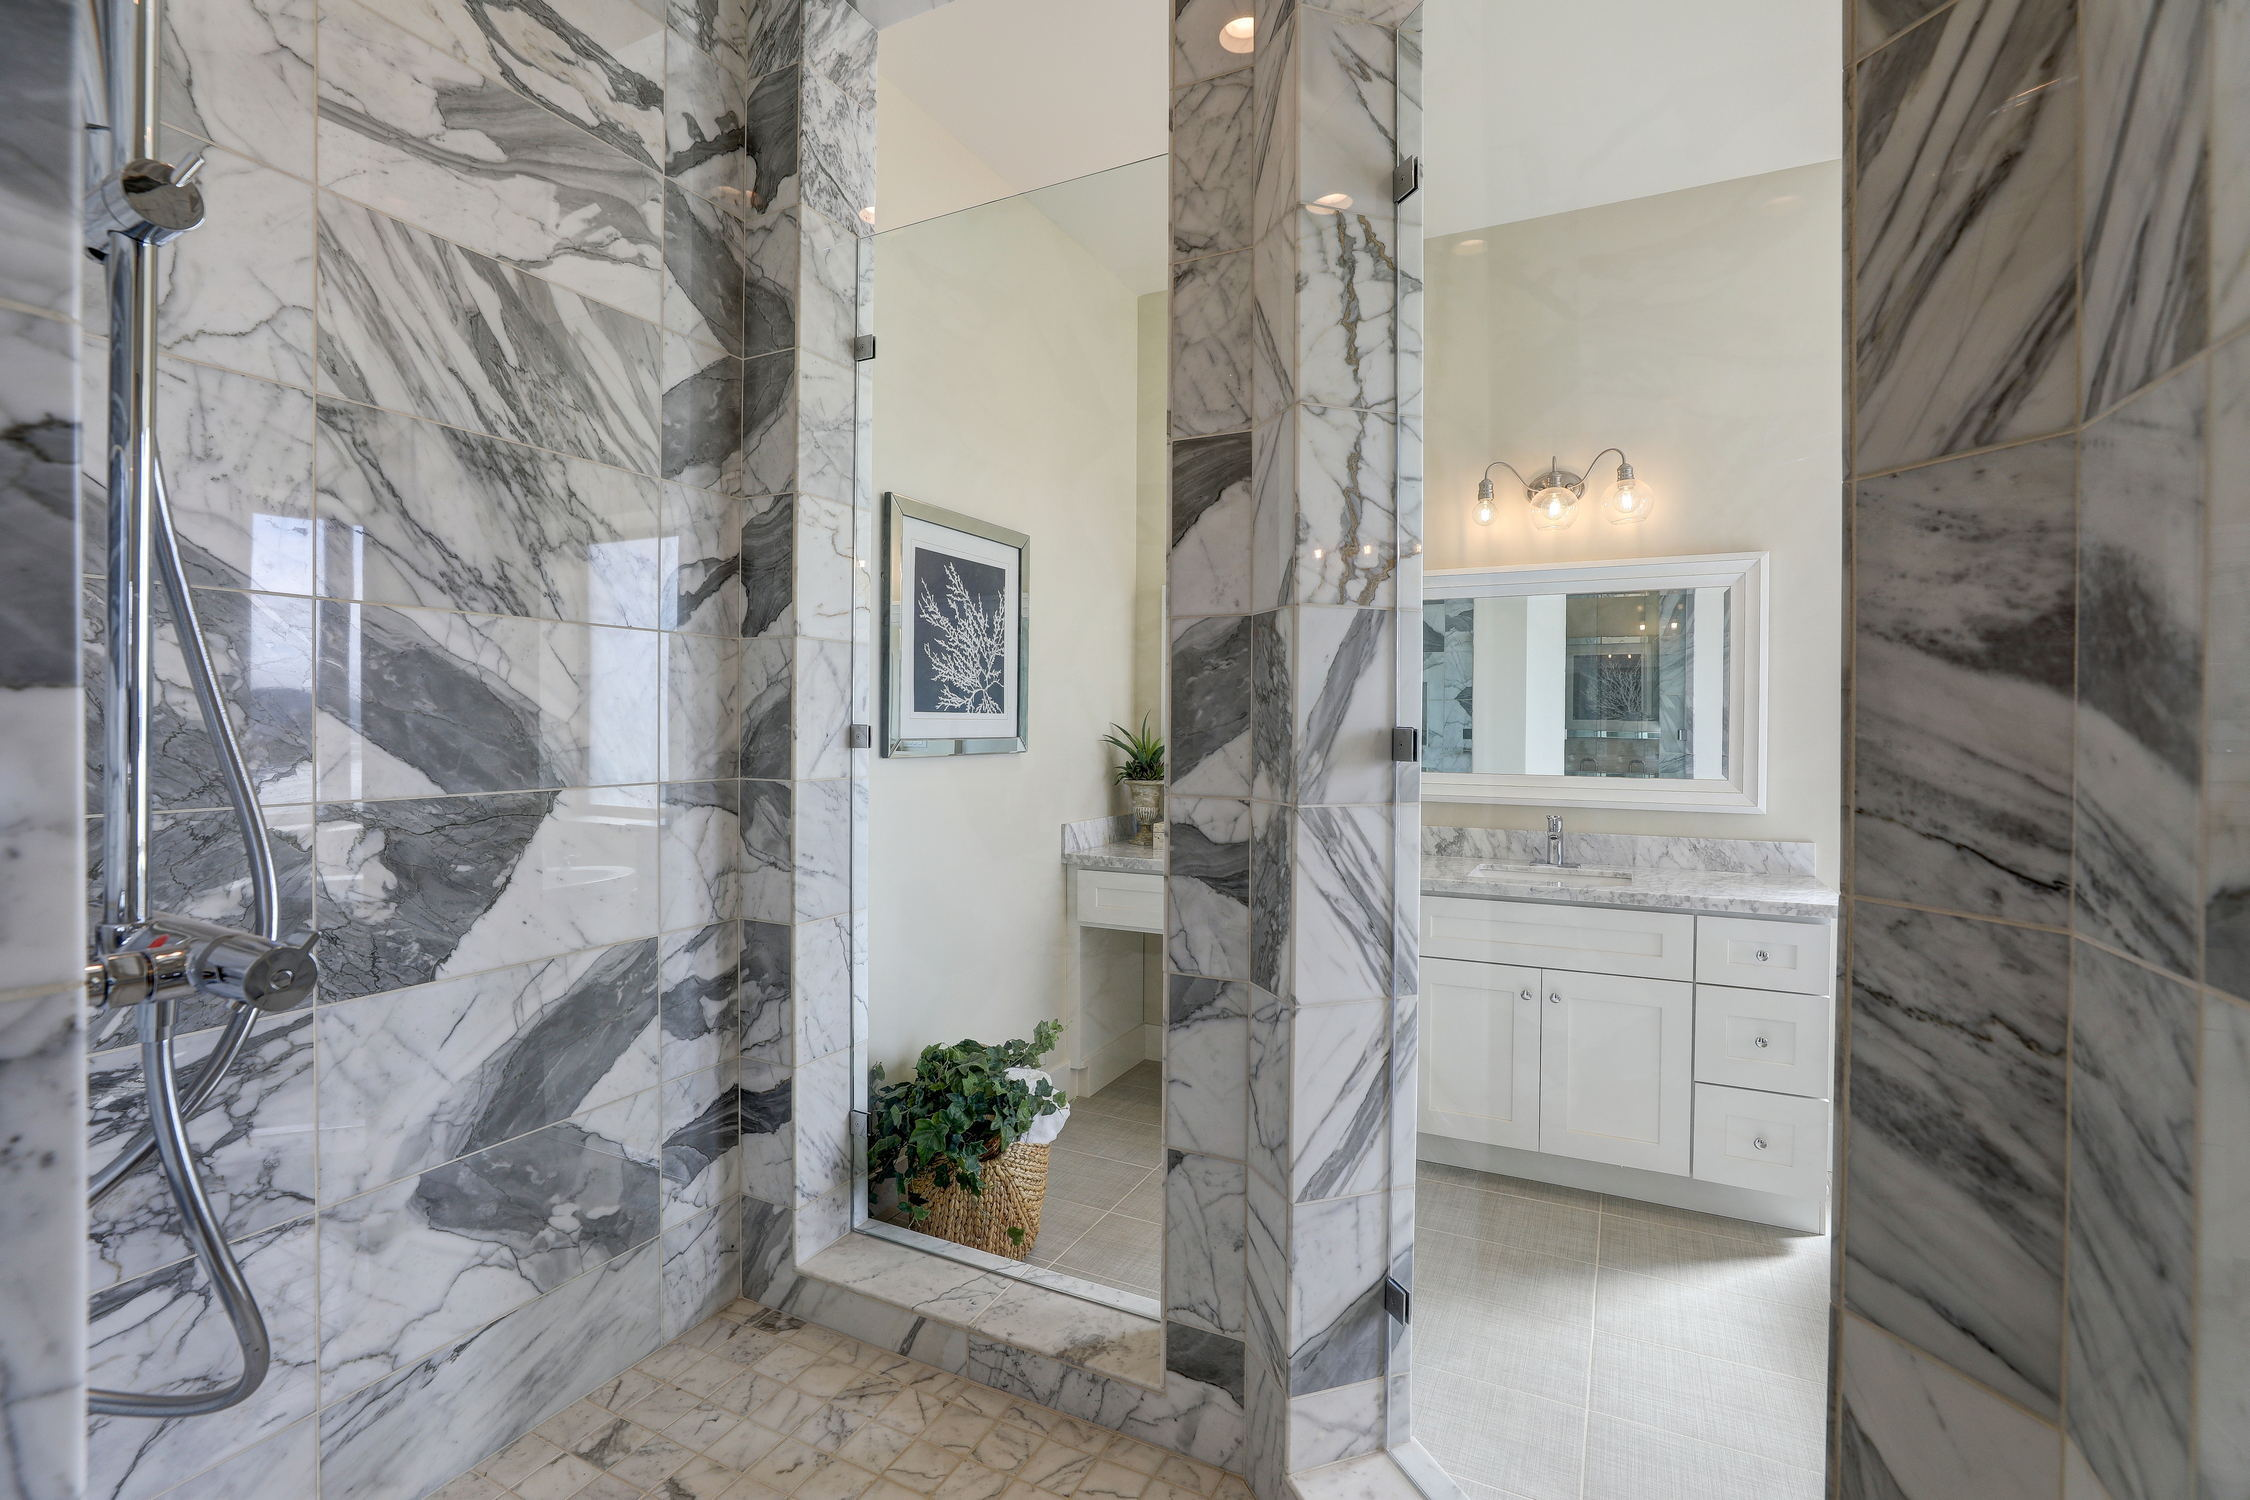 31 Drakes Cove, Larkspur Homes for Sale45 MLS - Own Marin with Compass - Mill Valley Realtor.jpg